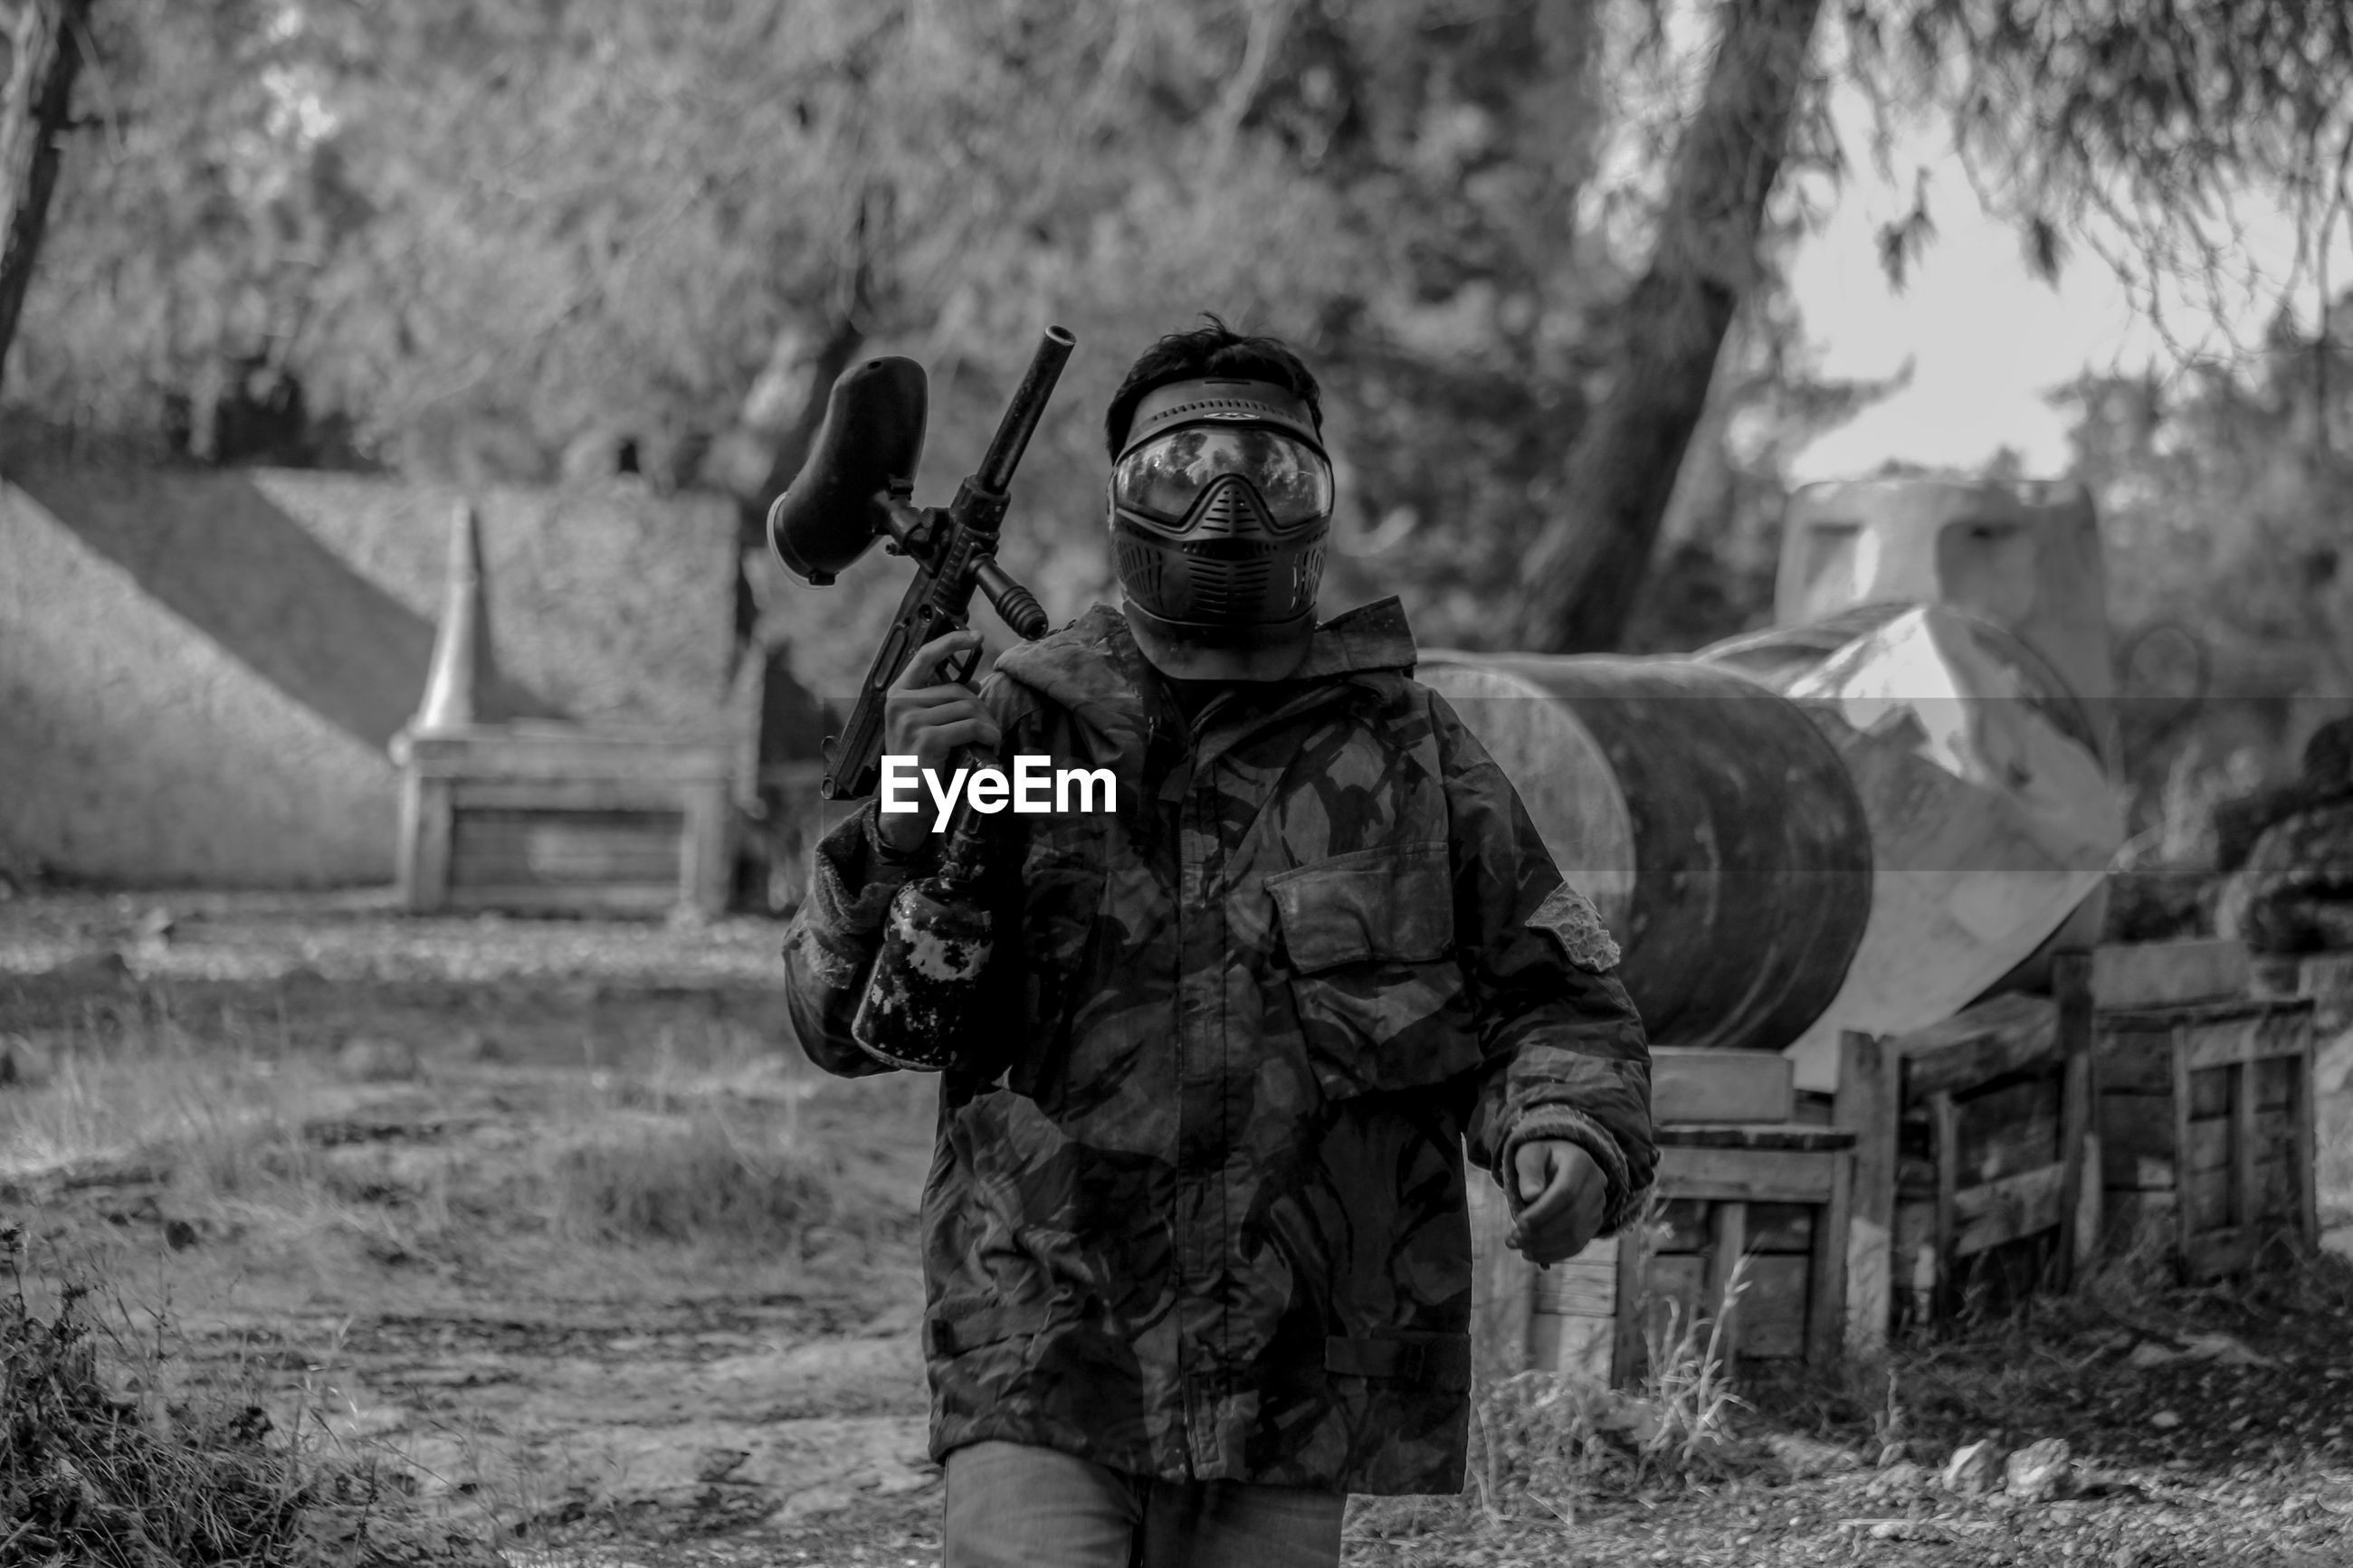 Man in camouflage clothing with paintball gun